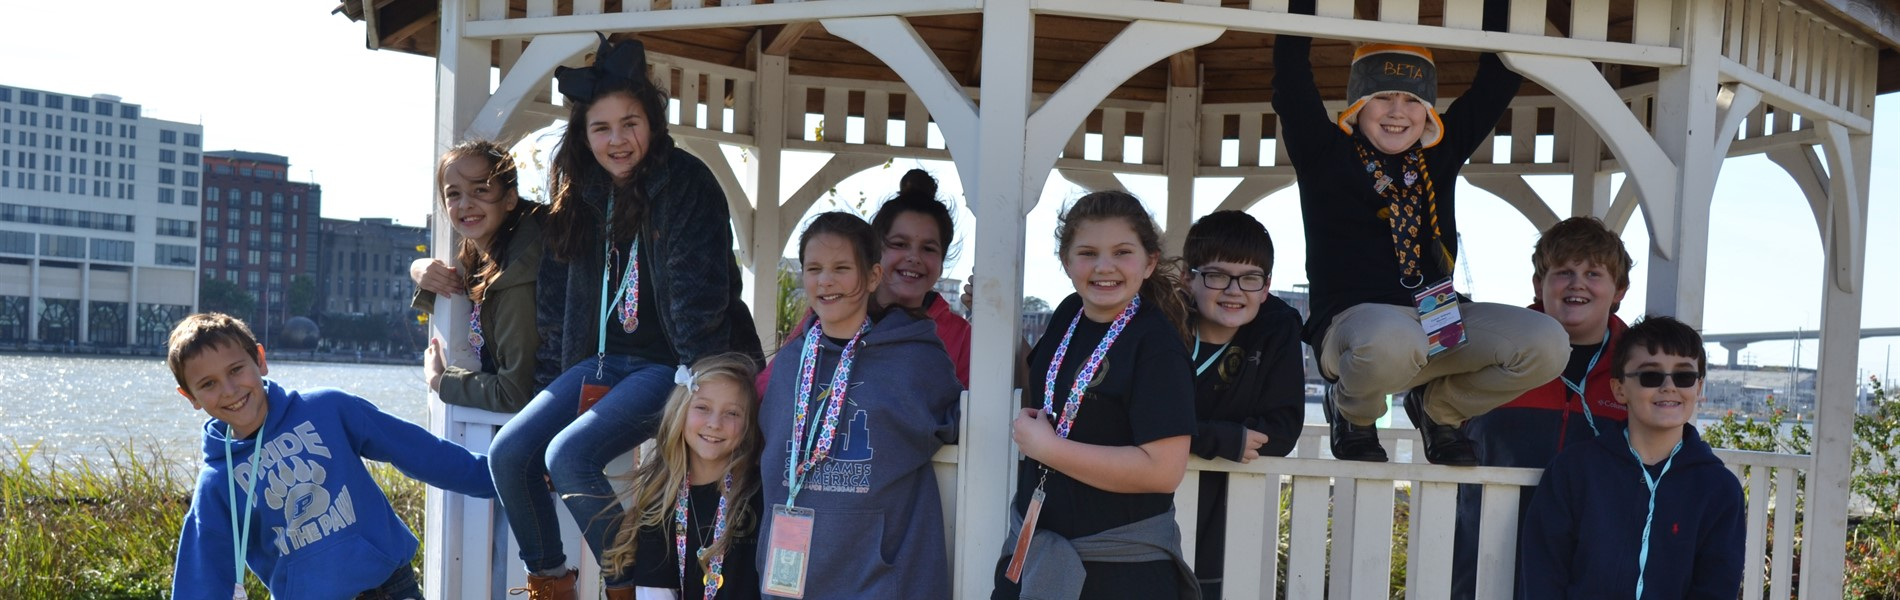 Students attending Beta Convention hang out in gazebo